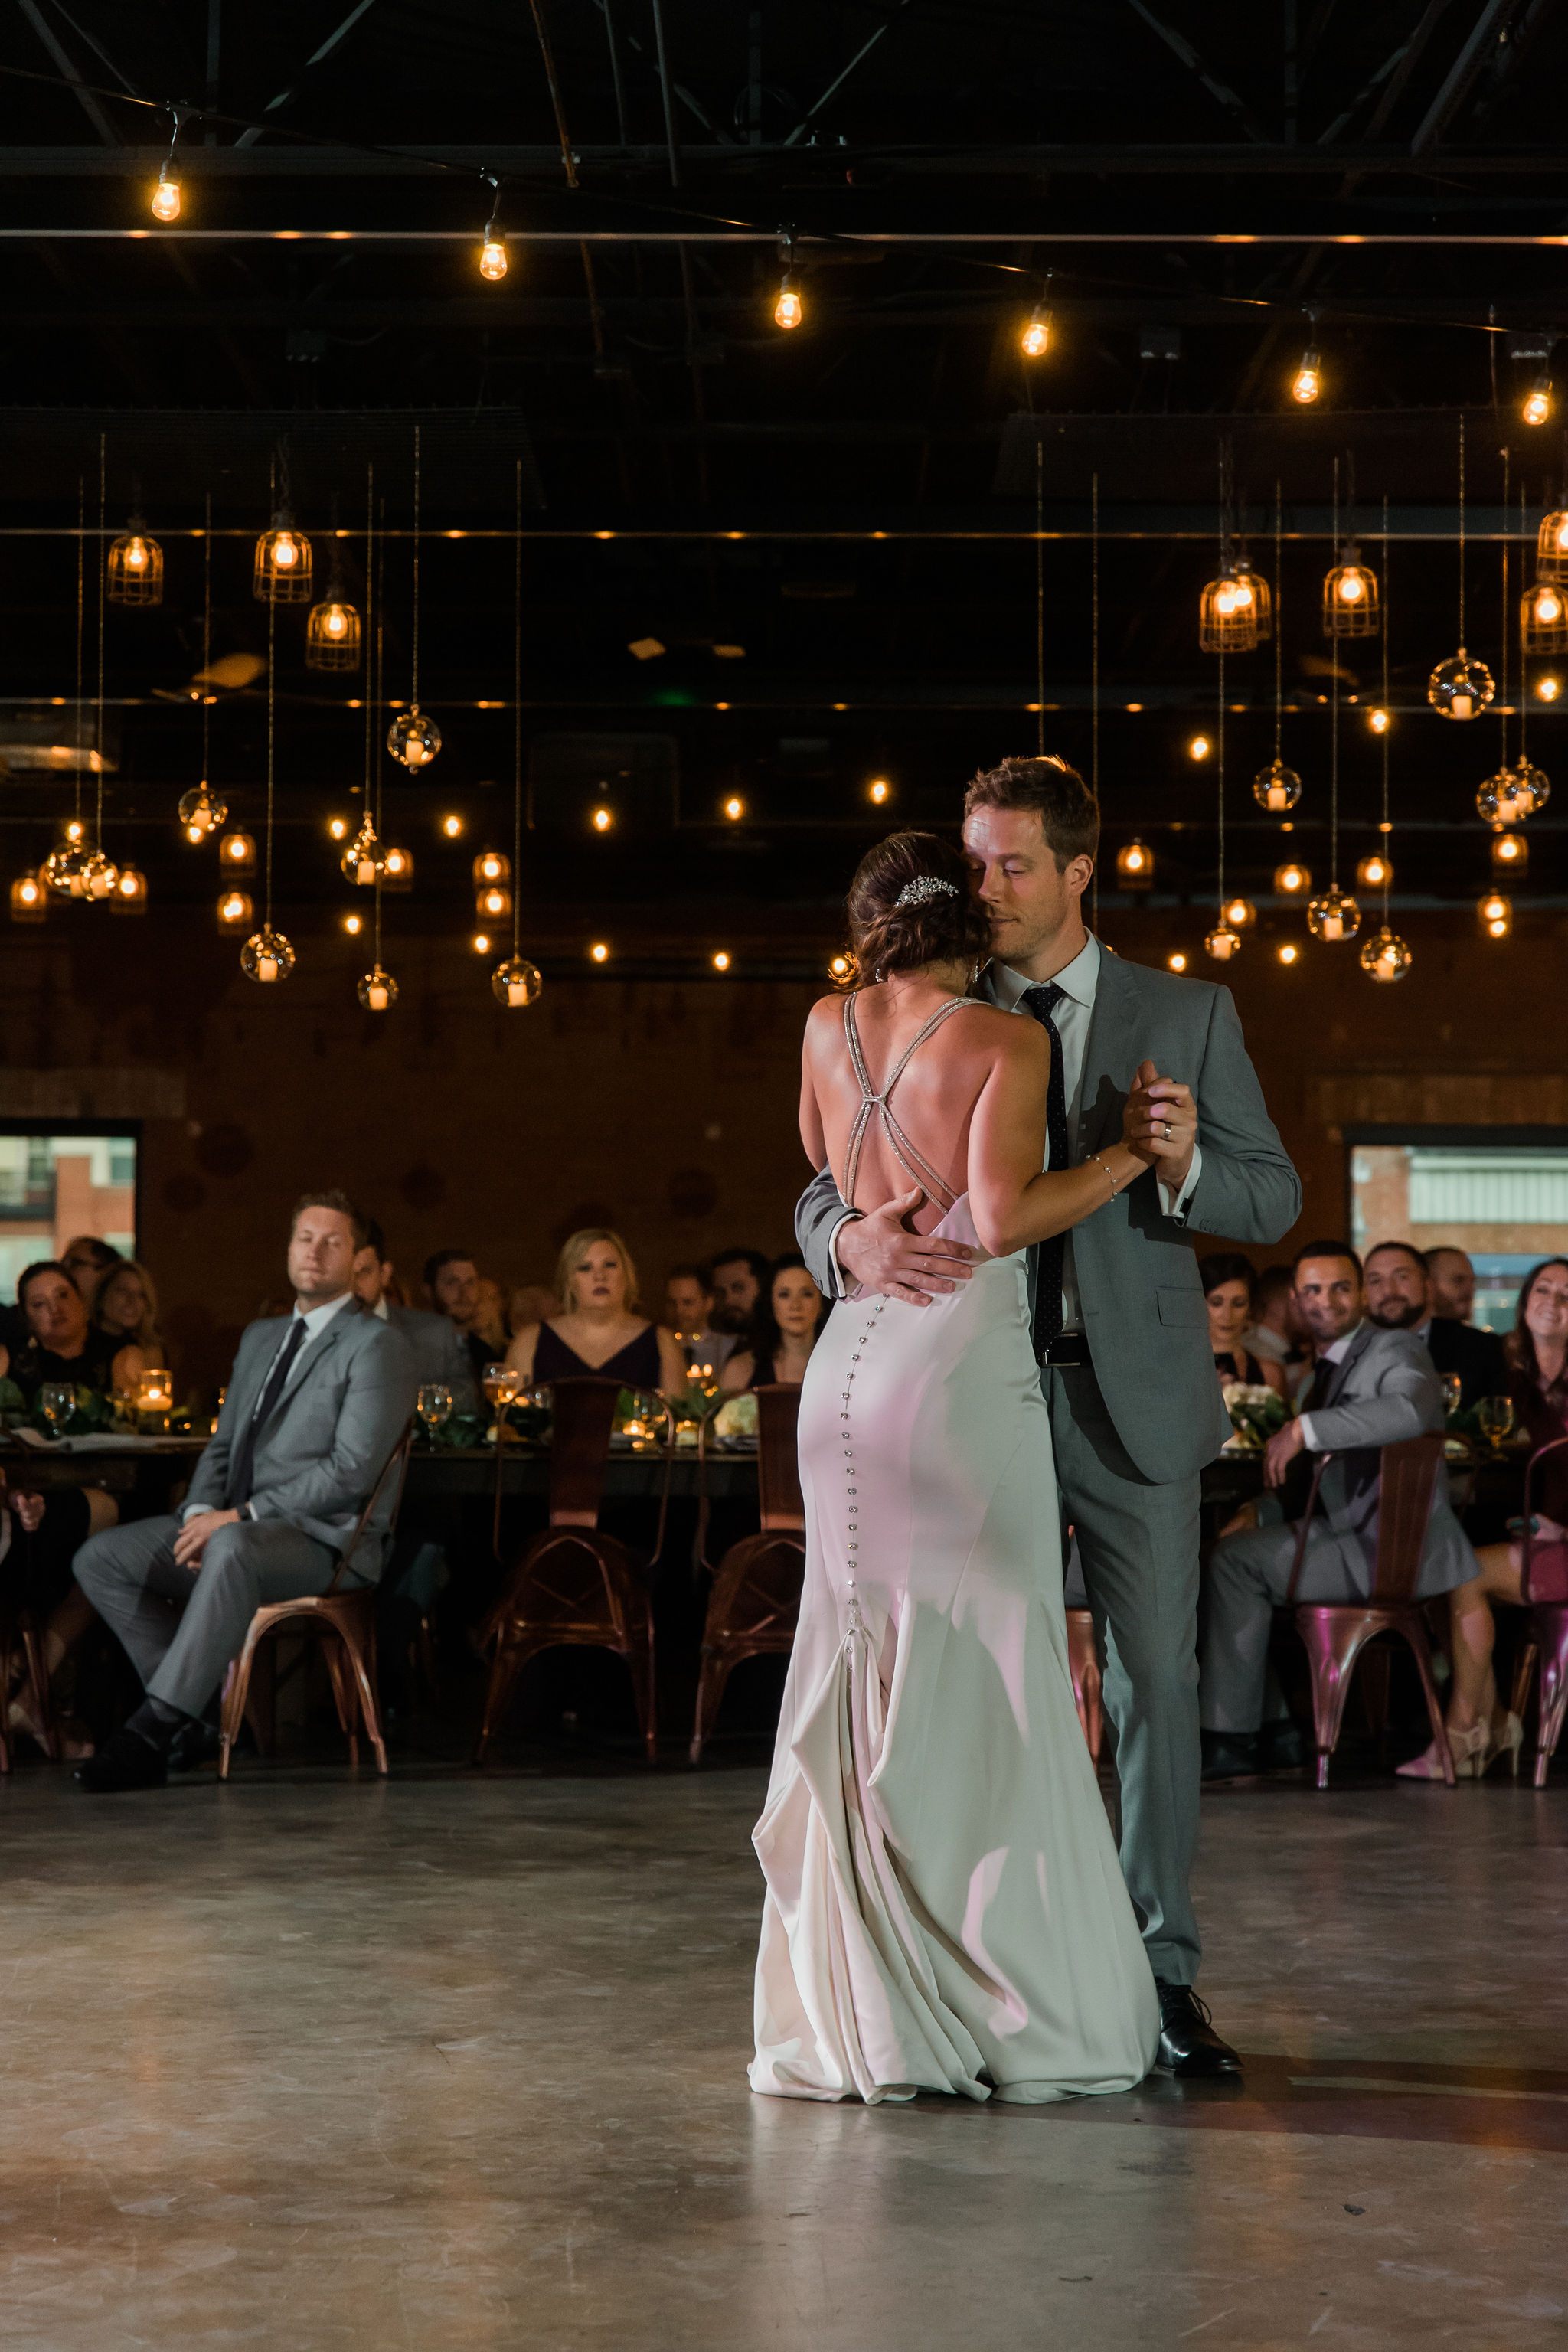 Sunshower Photography captures a bride and groom sharing their first dance during their wedding reception at Triple C Barrel Room